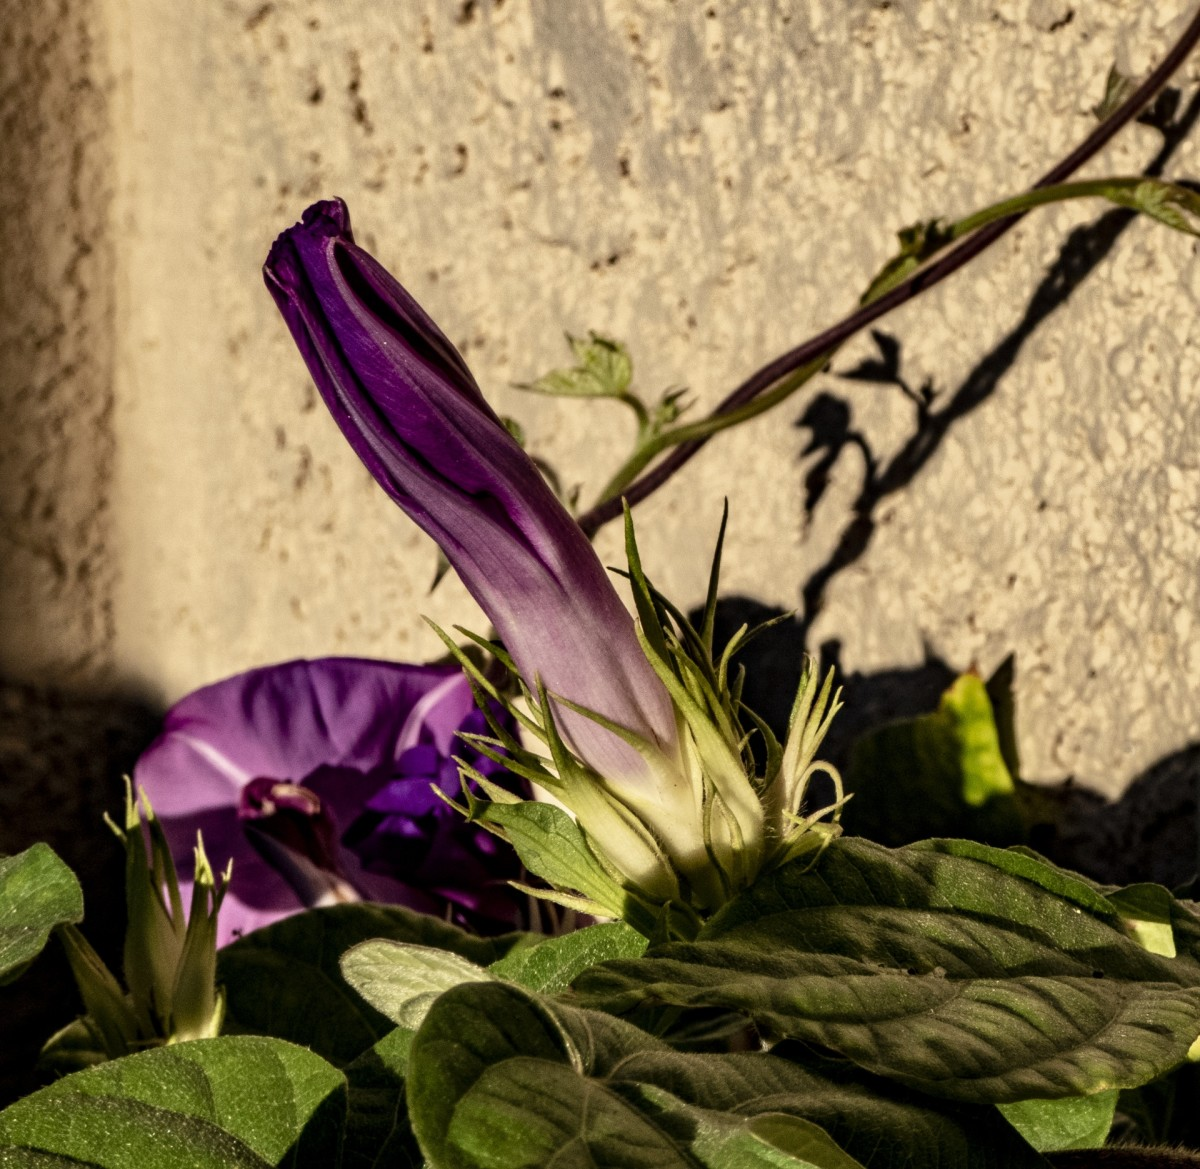 how-to-get-rid-of-morning-glory-safely-permanently